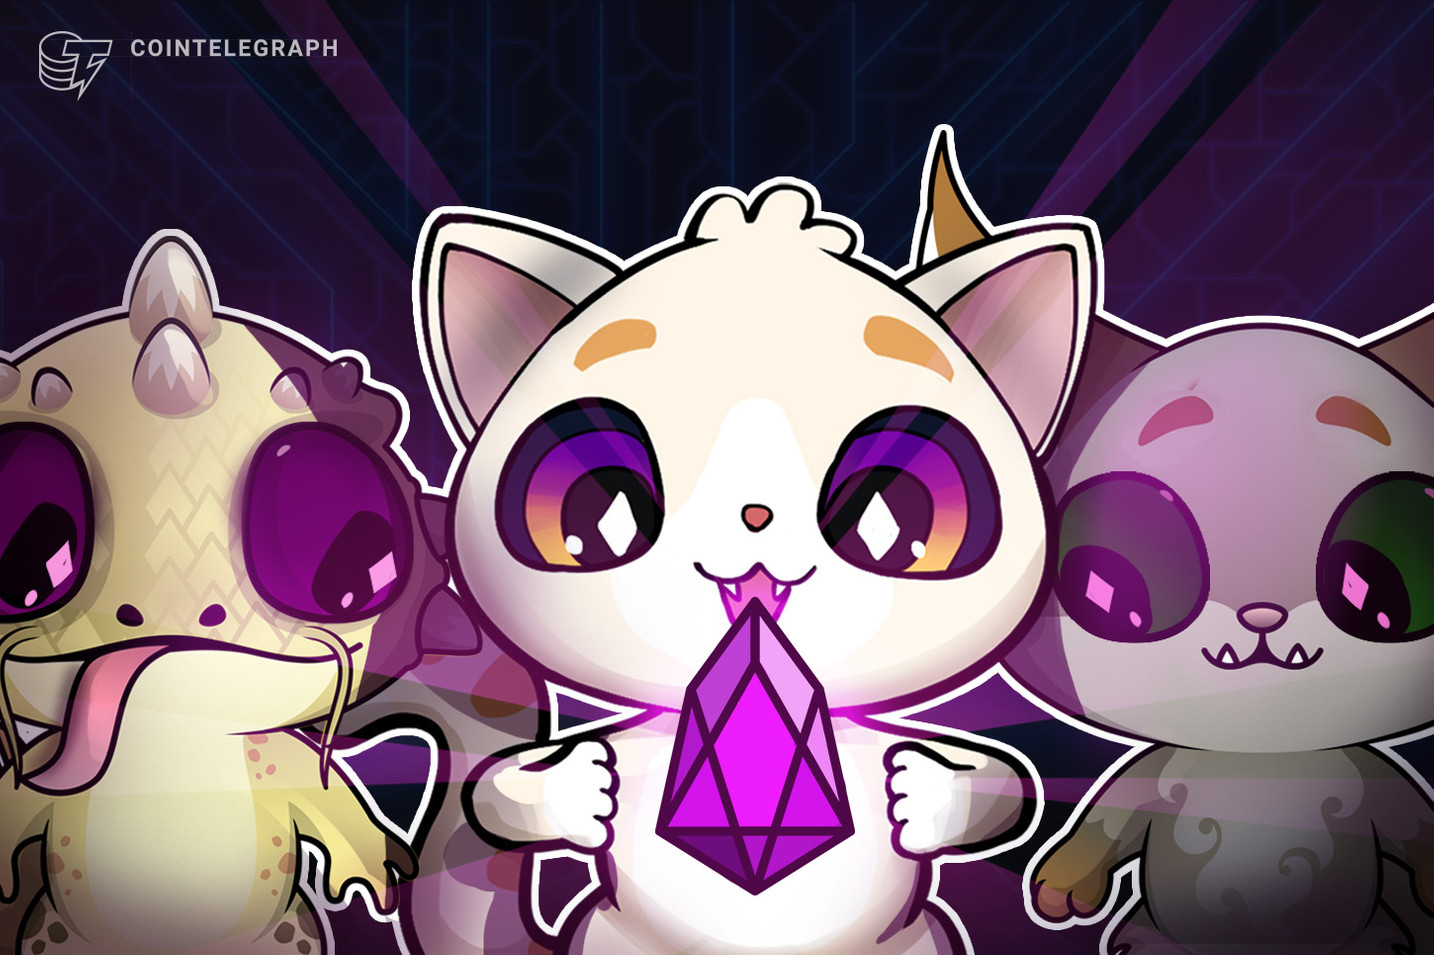 'First' Collectible on Two Blockchains: 'The Cutest Crypto Game' Now Available on EOS